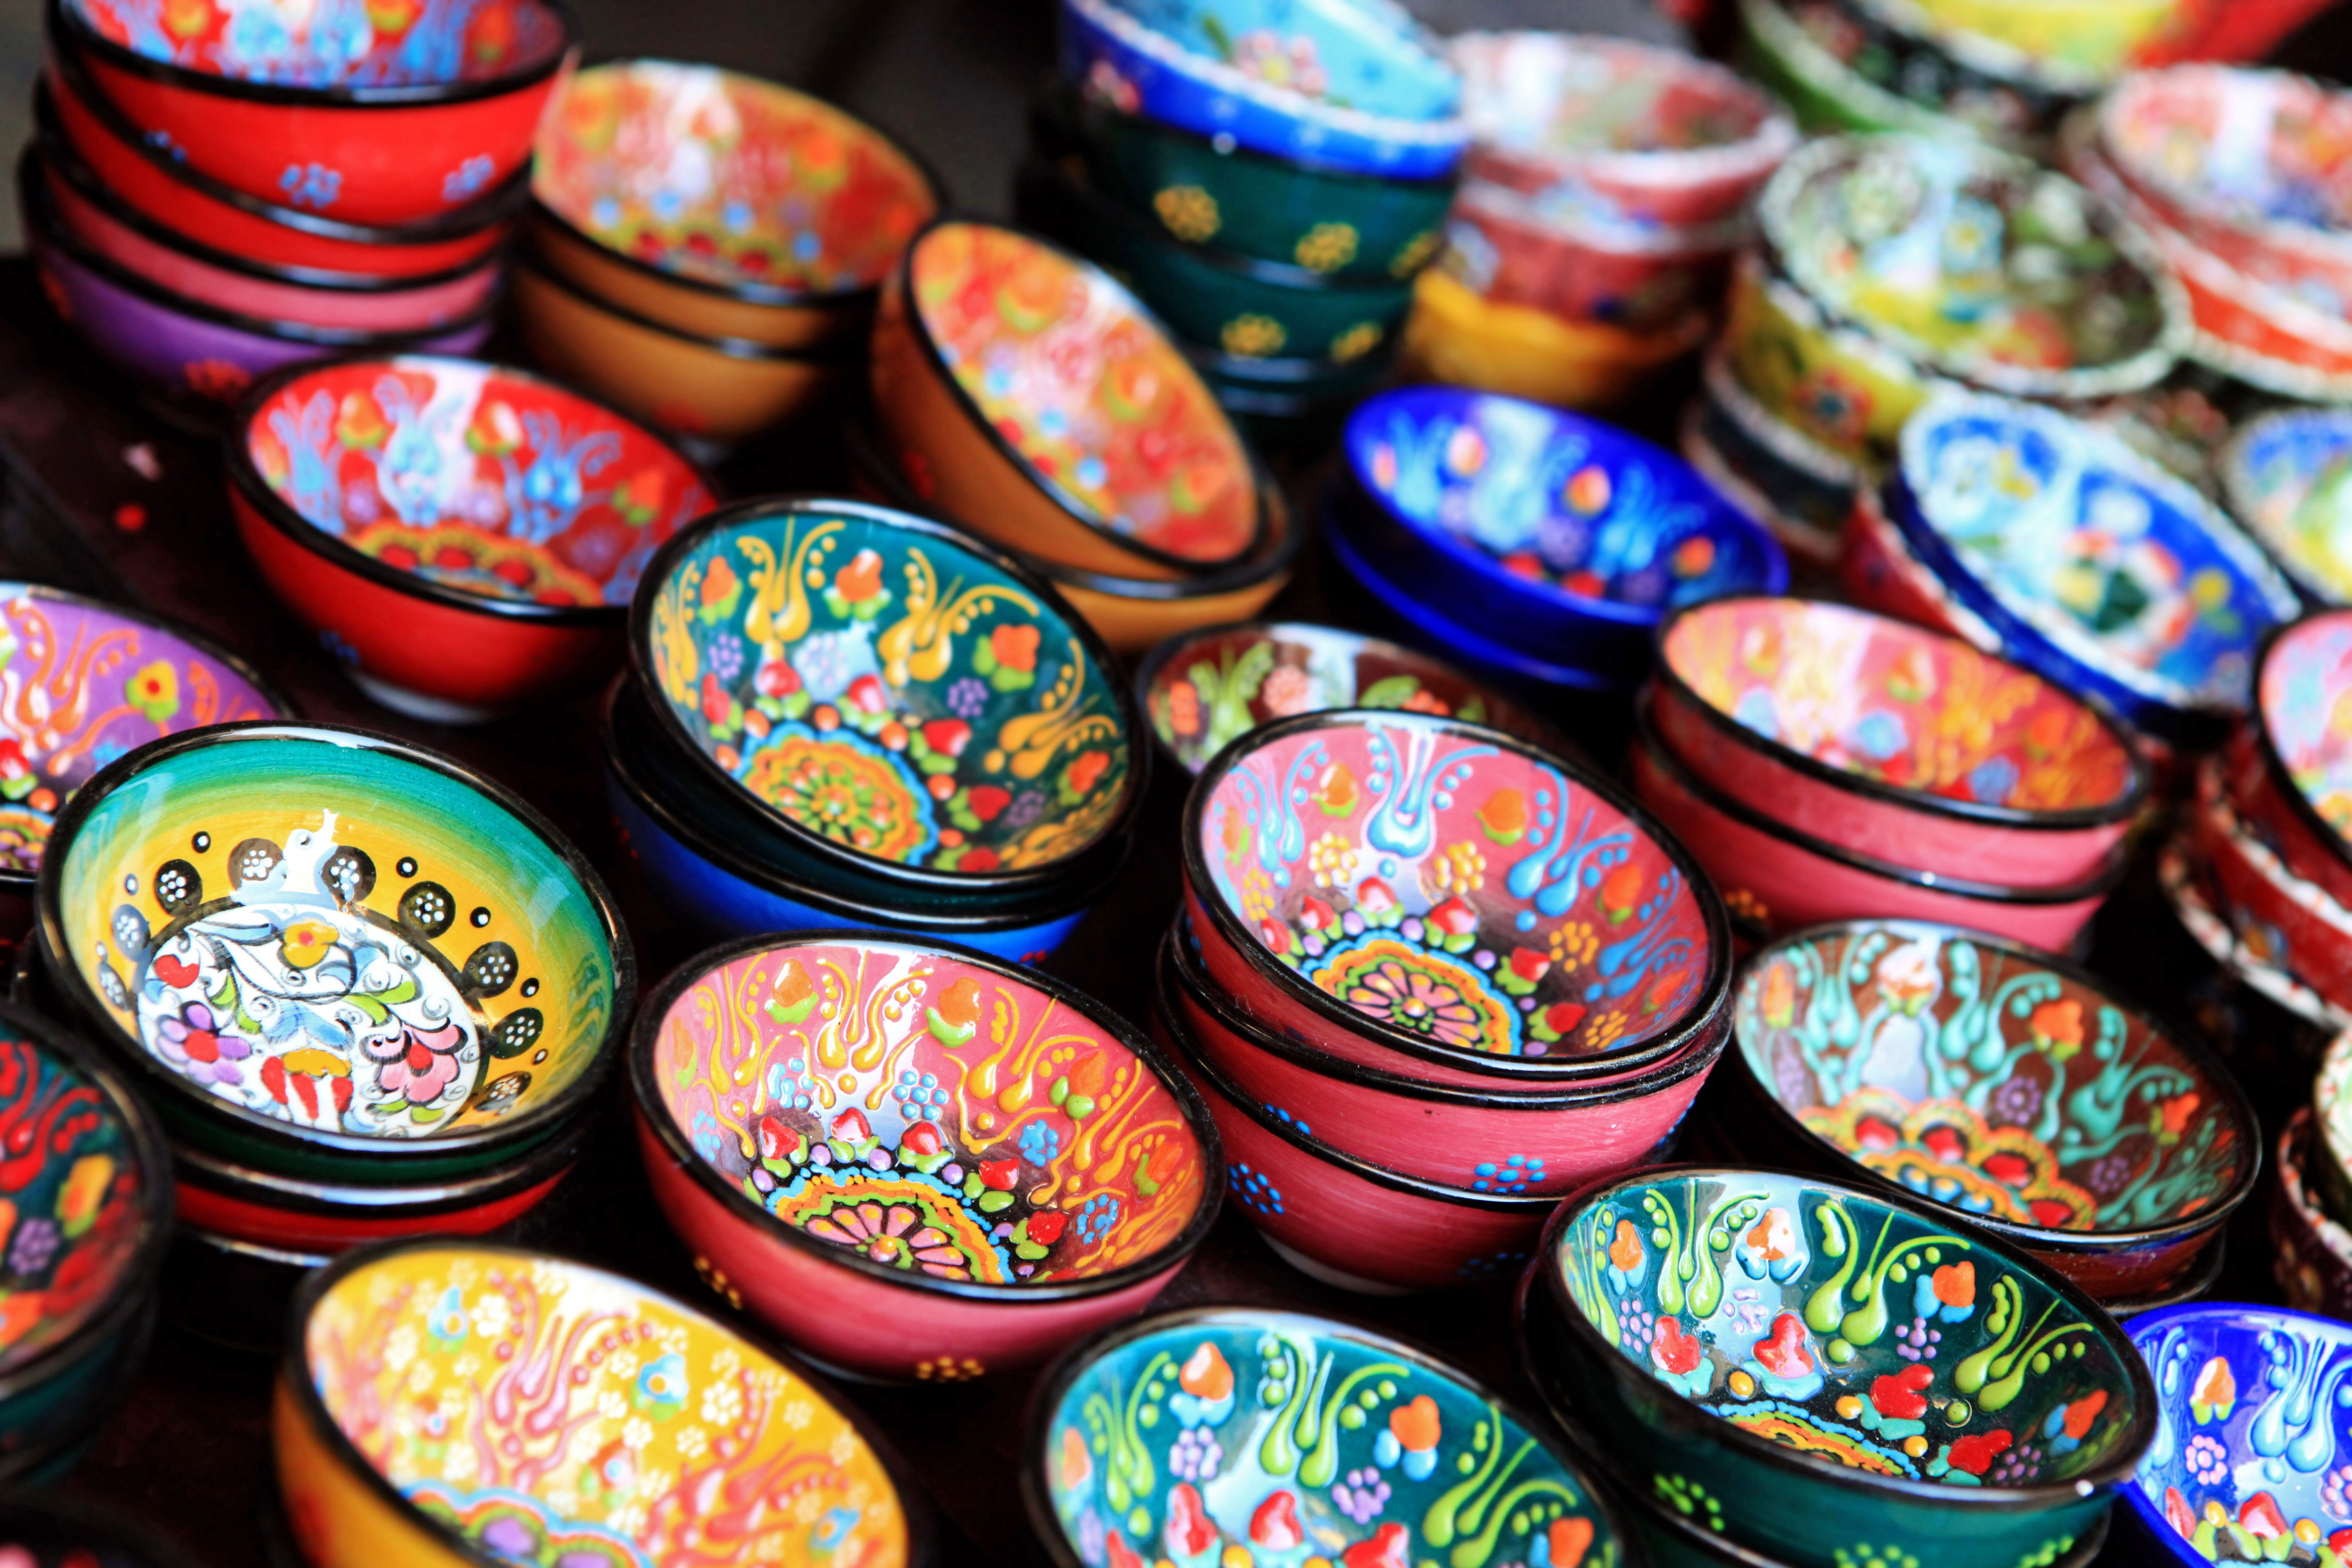 Colorful craft markets are free to visit in Dubai.